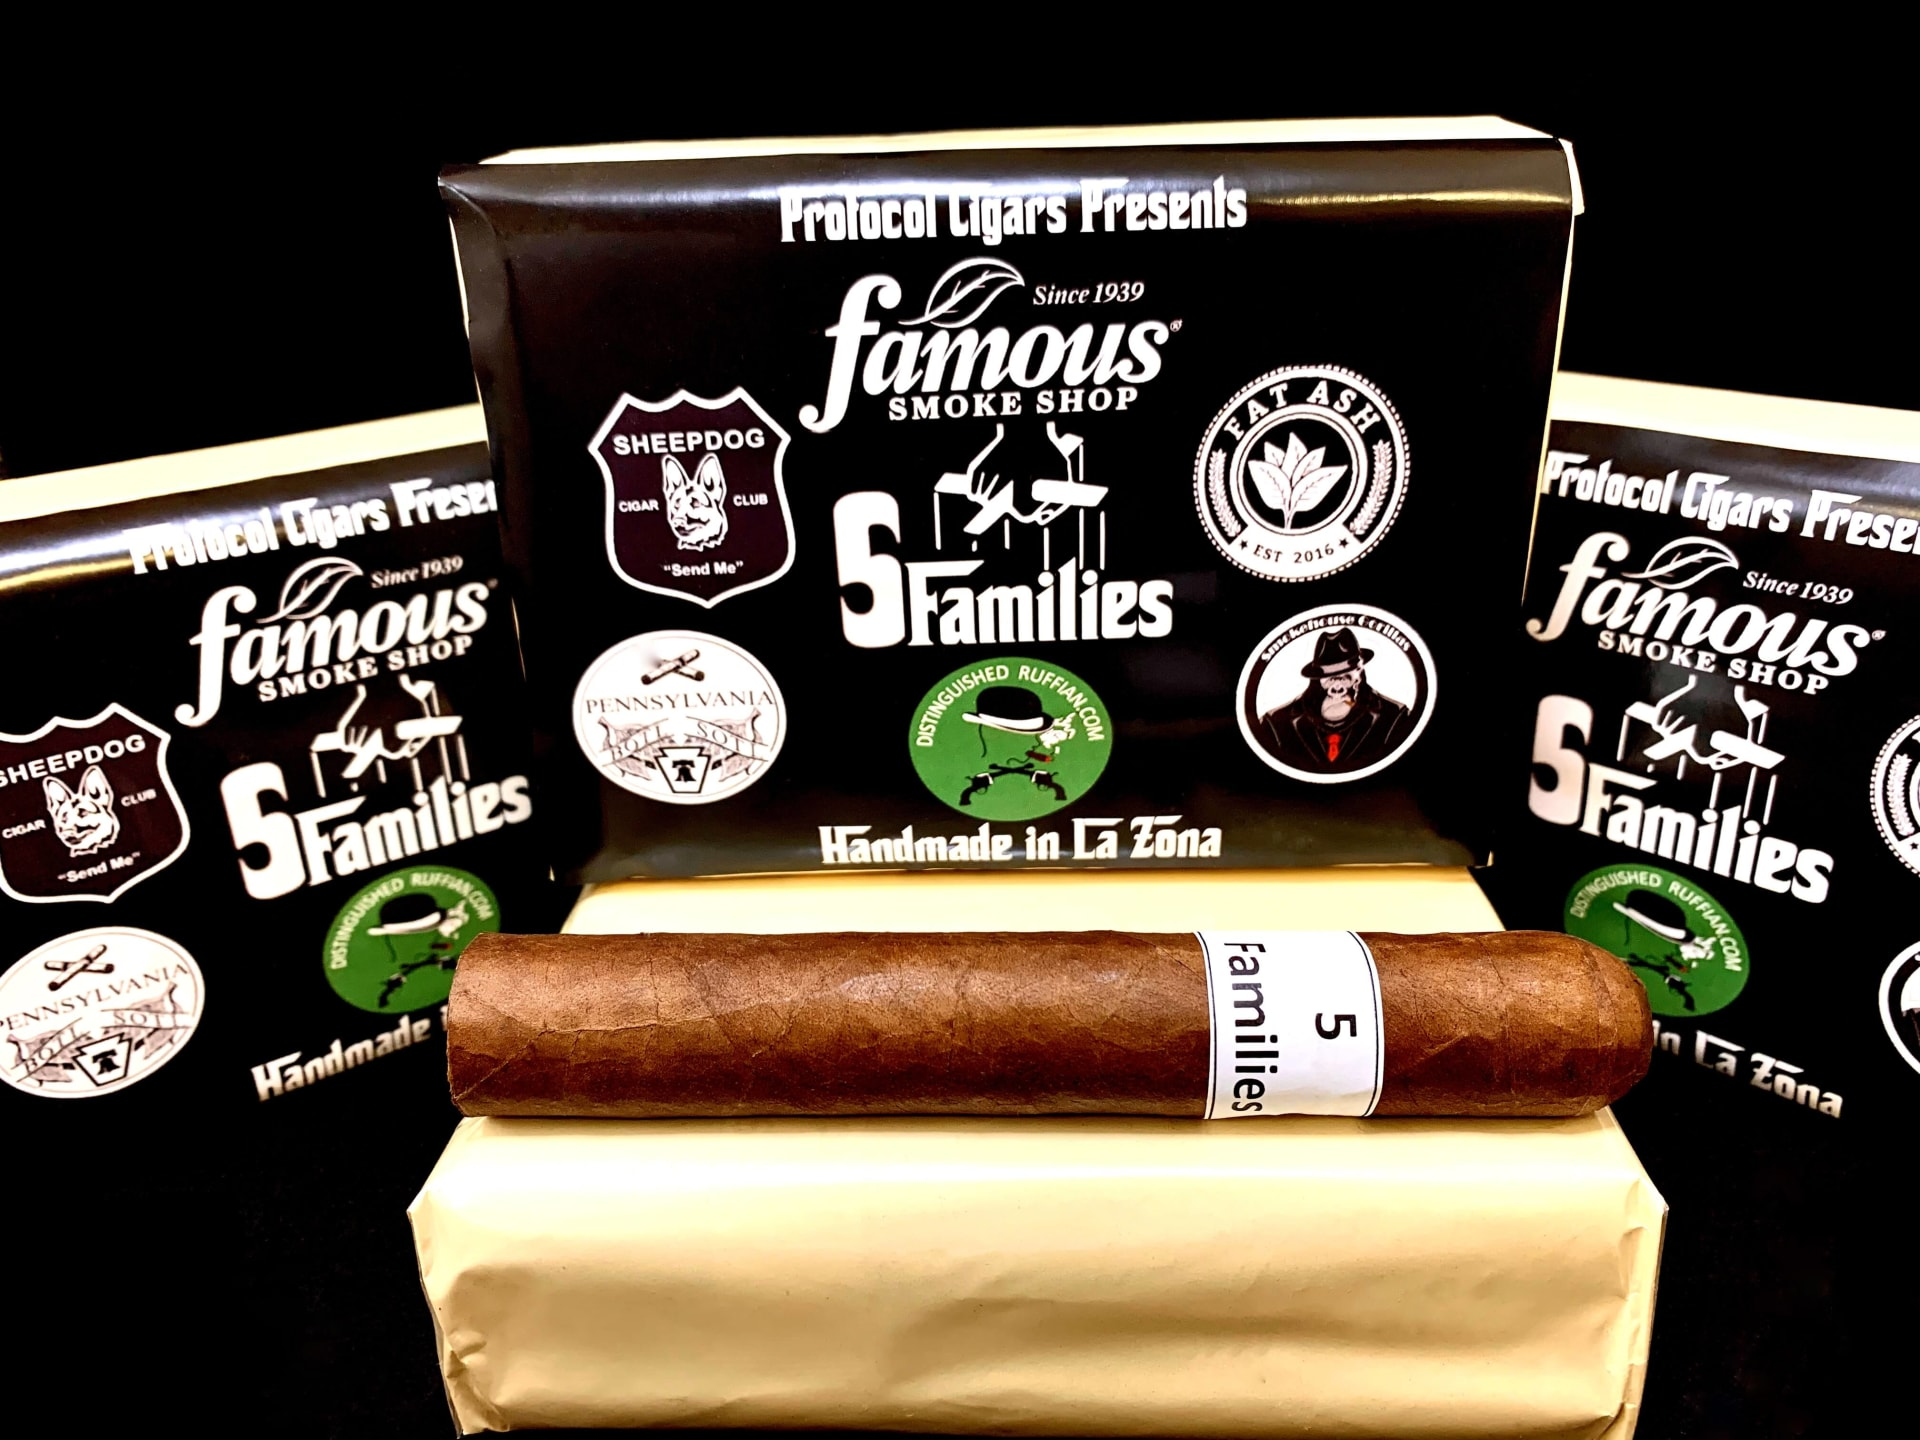 Cigar News: Protocol Announces 5 Families Featured Image